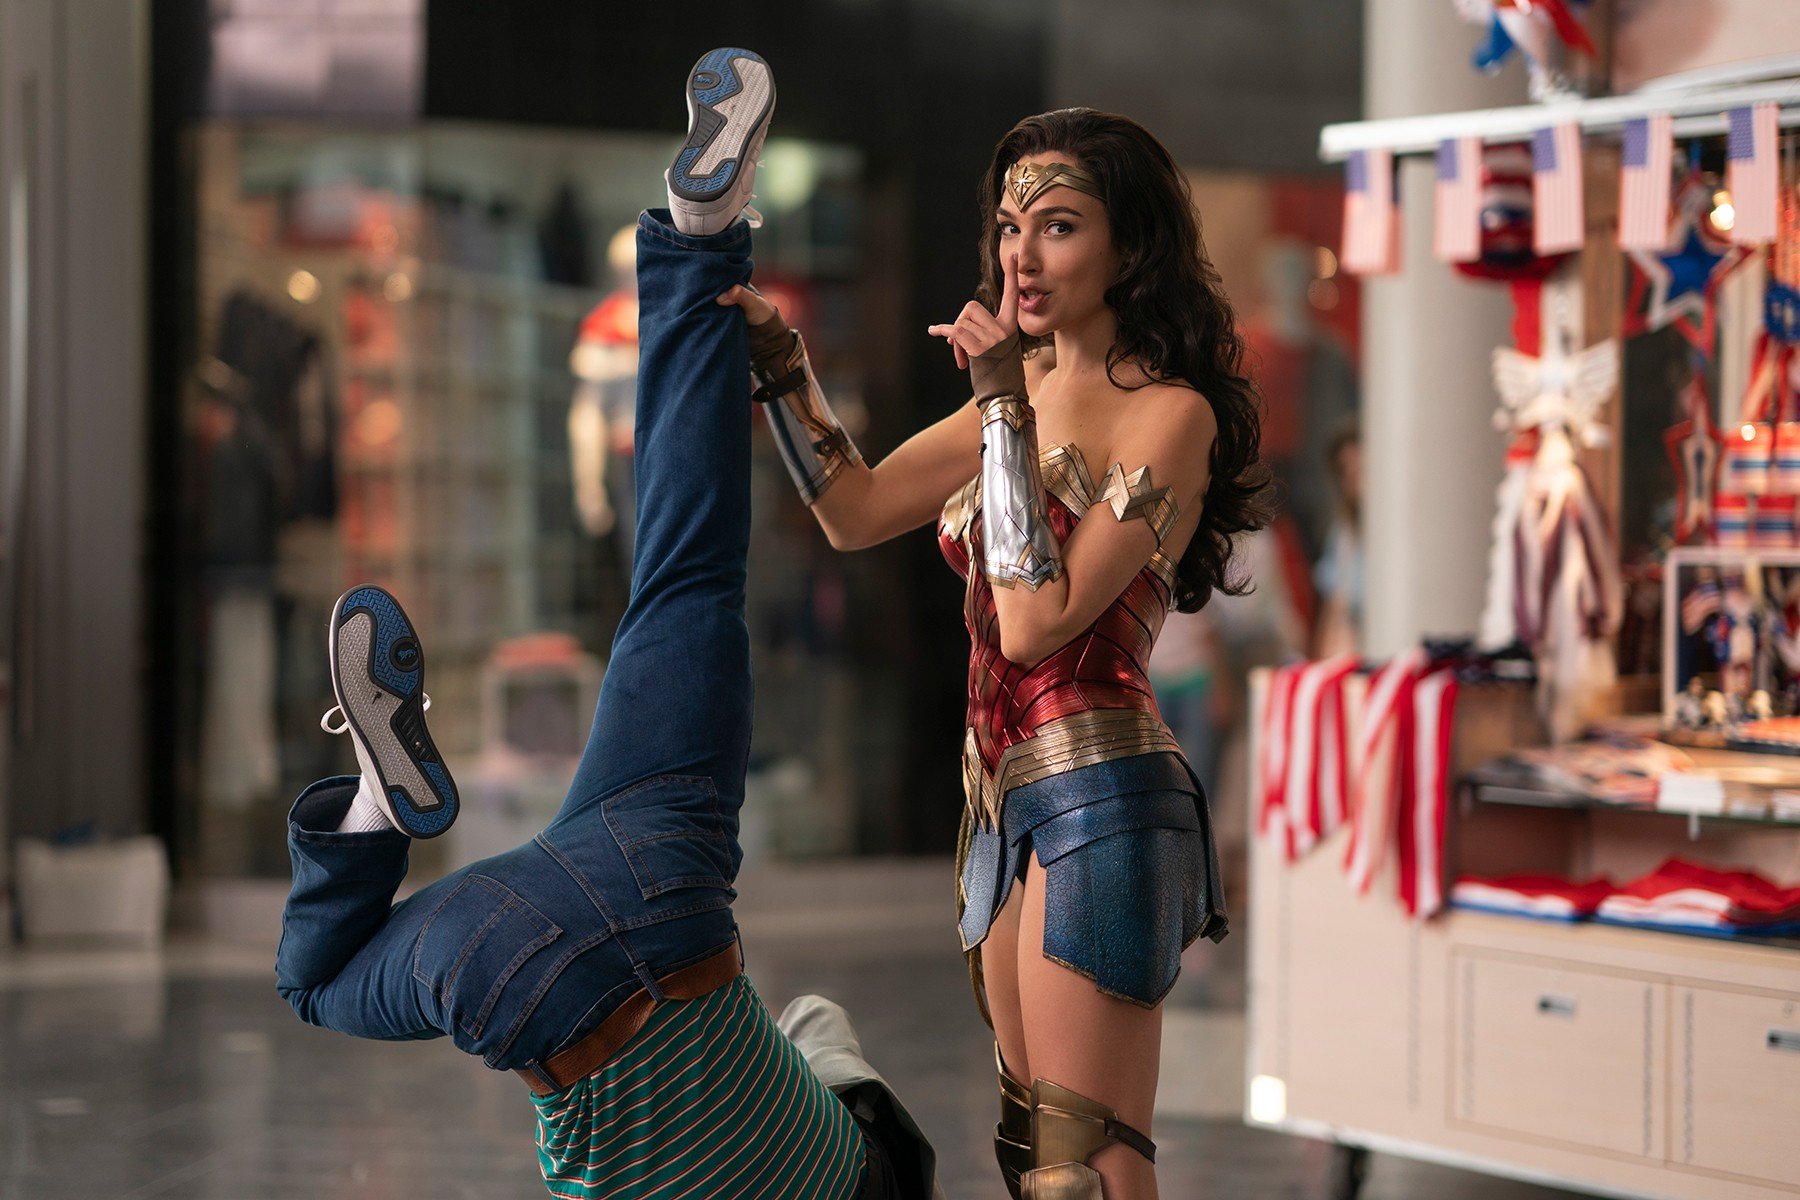 WTF WW? Wonder Woman 1984 Crashes the Invisible Jet | Film/TV/Etc. Blog